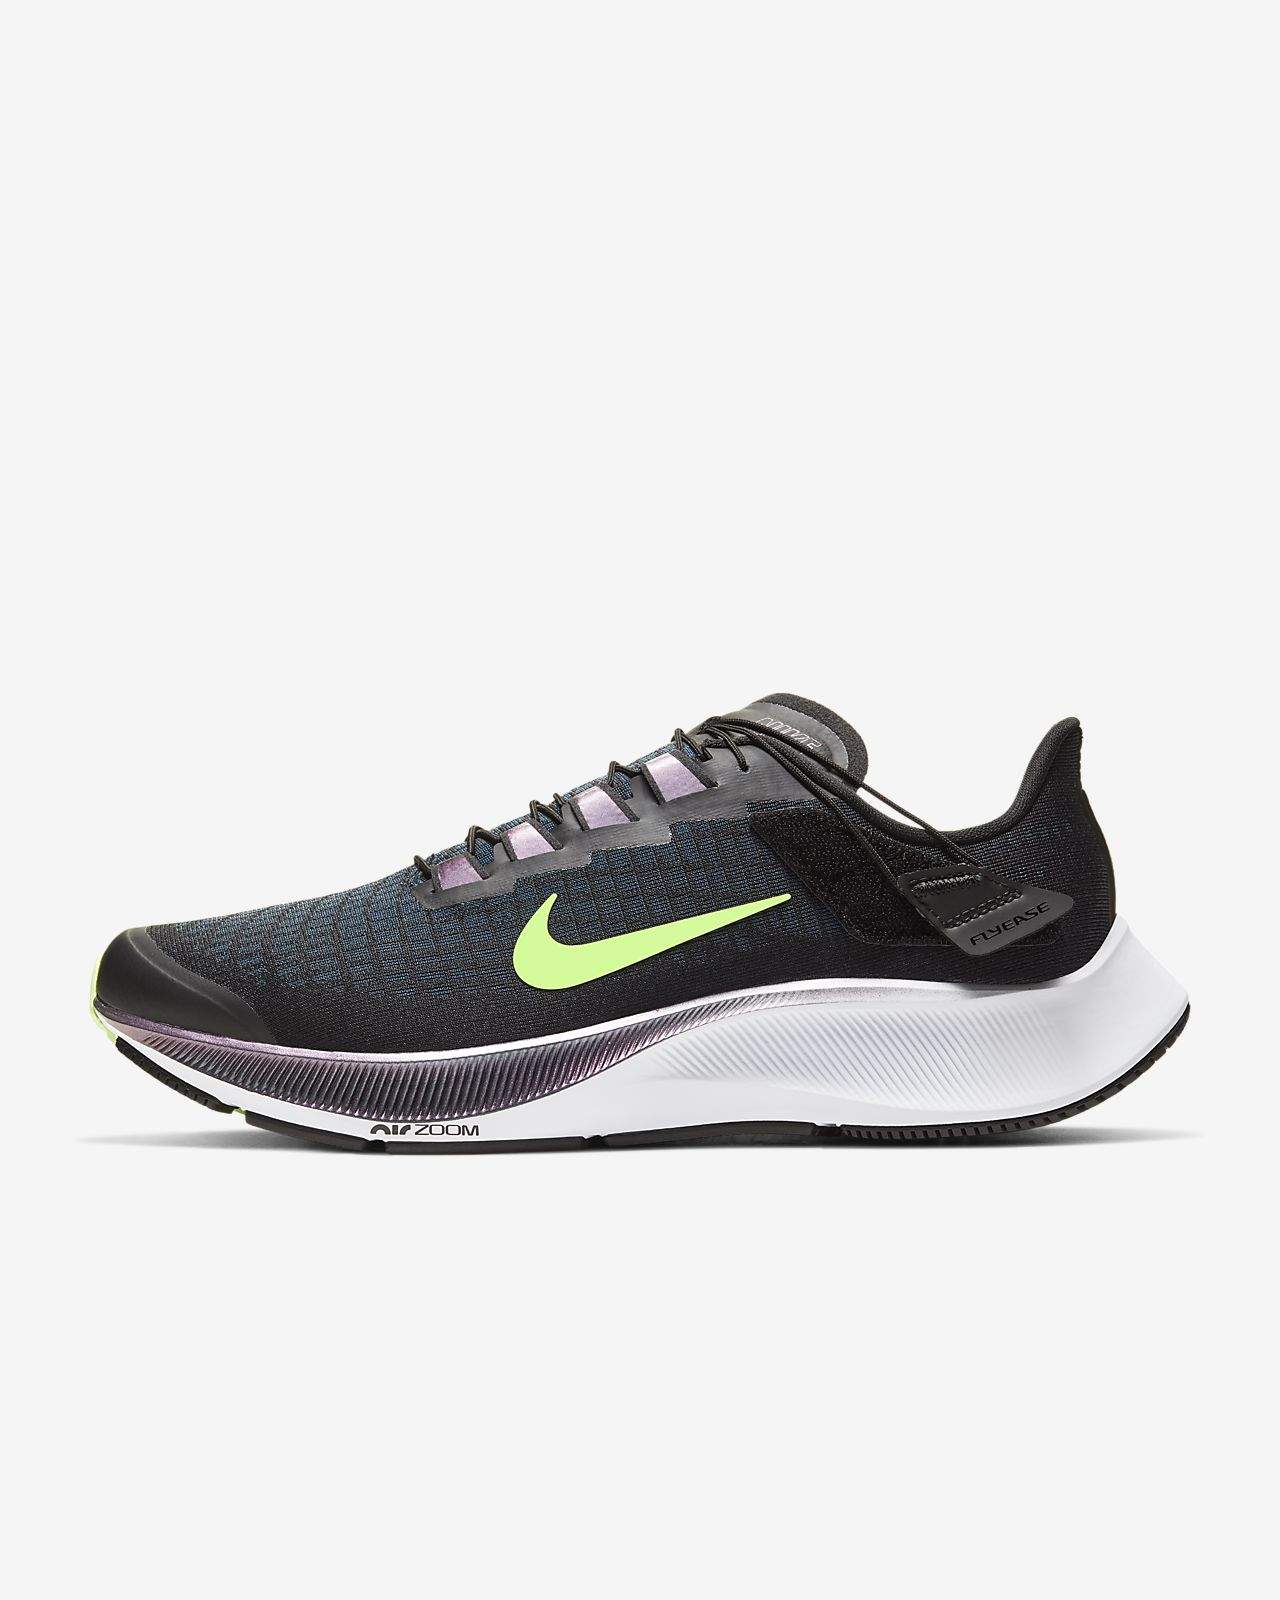 Nike Flywire Shoes. Nike GB